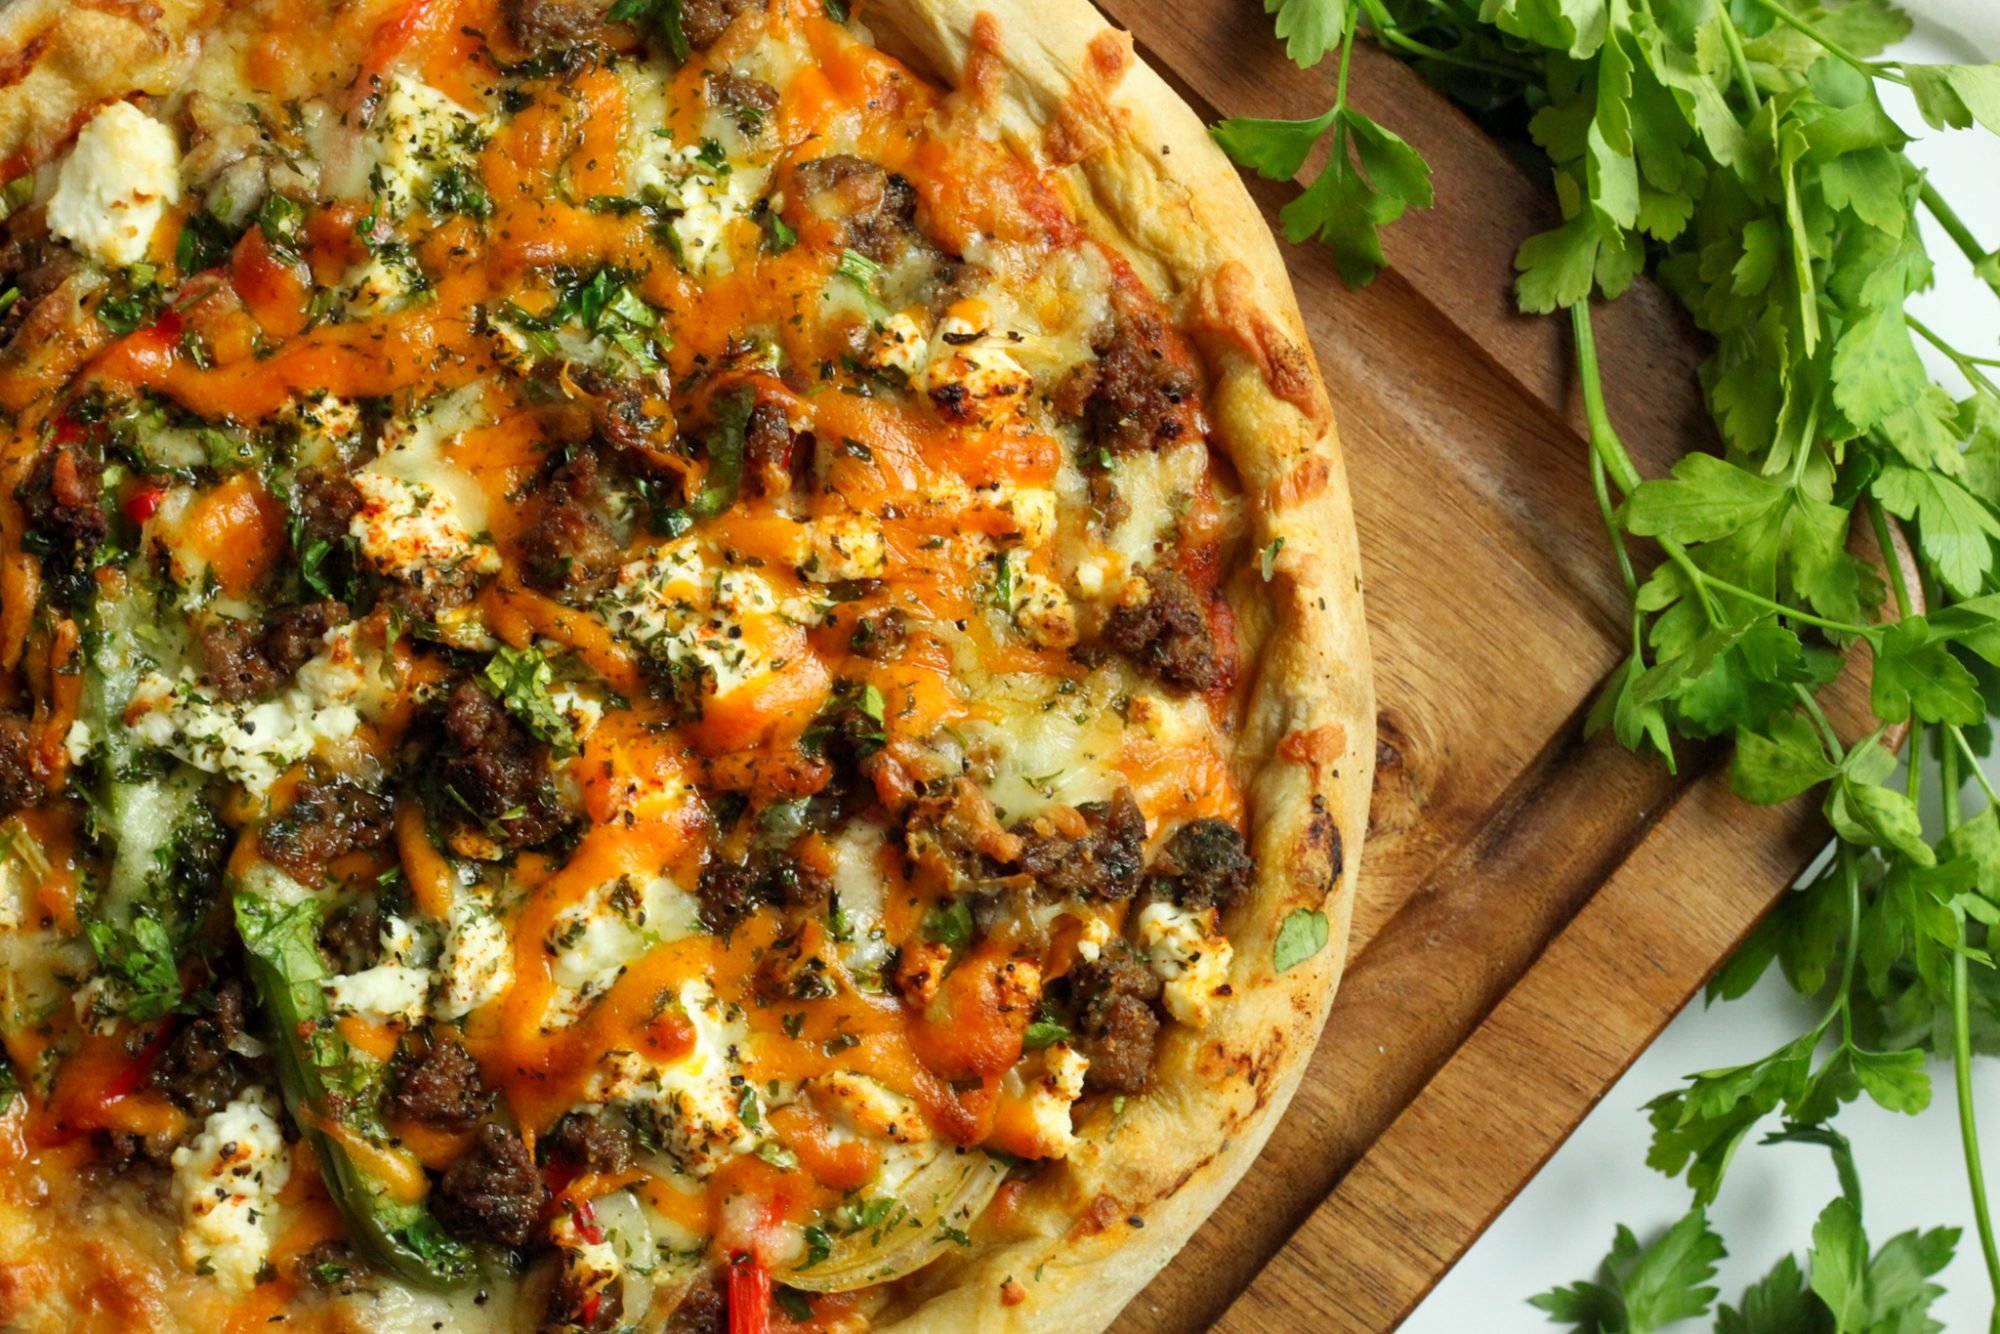 Homemade Roti Pizza with spicy sausage